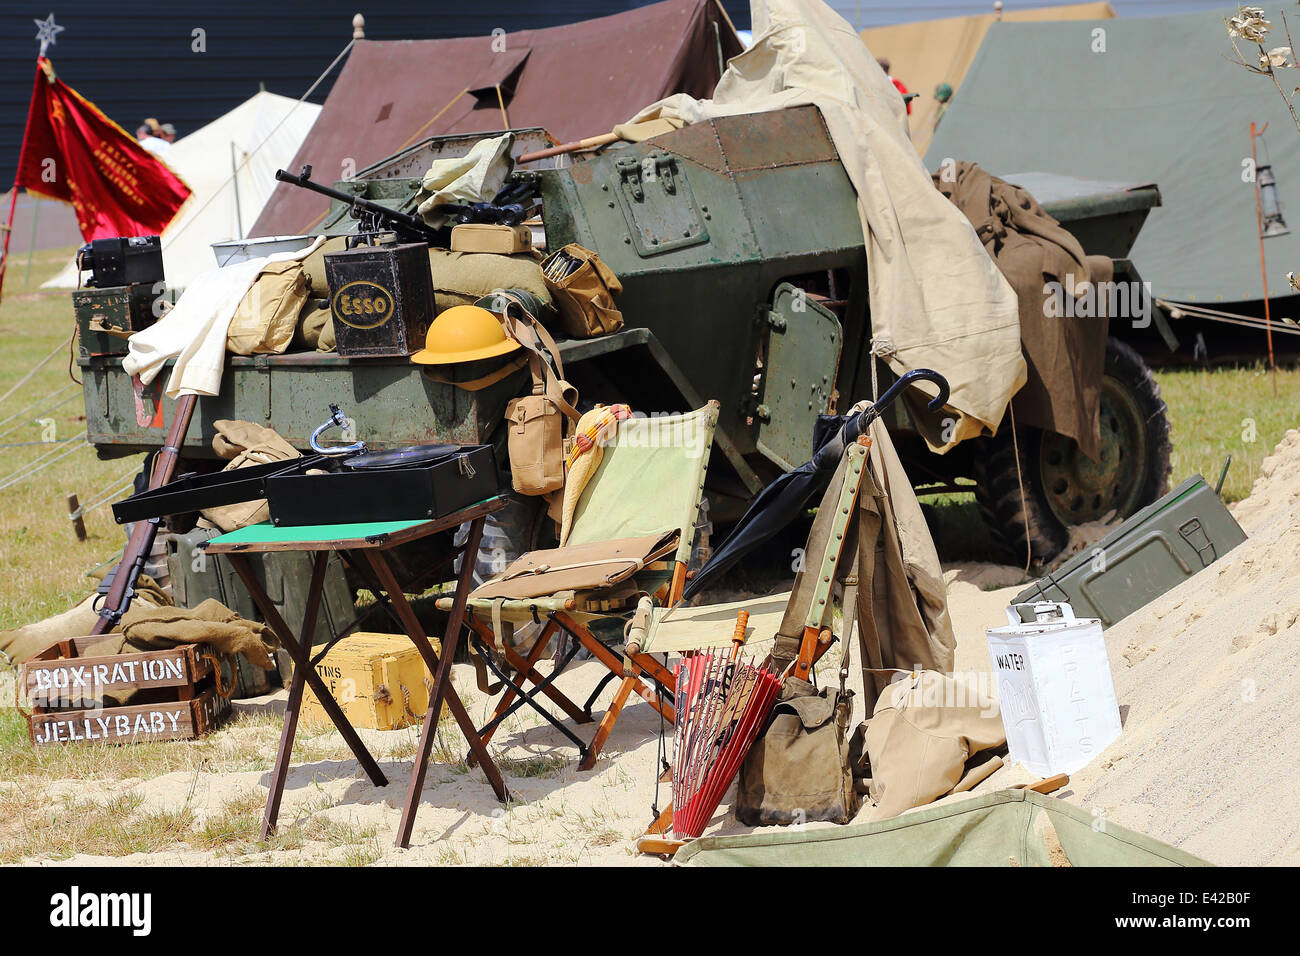 War display at Tankfest in Tank Museum in Bovington, Dorset, England - Stock Image